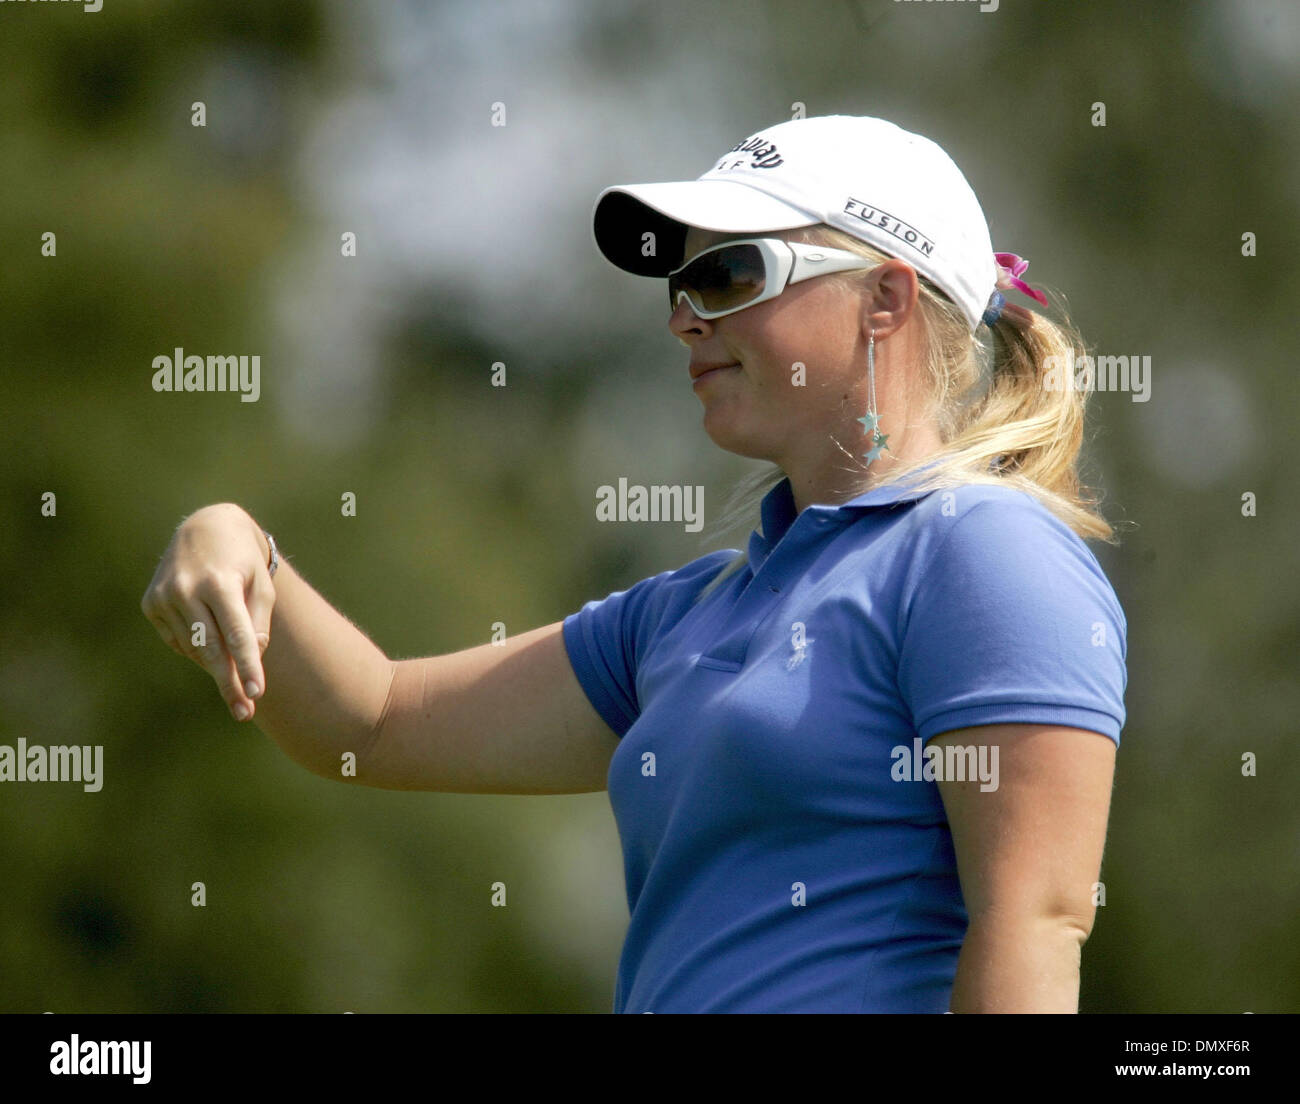 Feb 15, 2006; Oahu, HI, USA; Morgan Pressel gestures after hitting her ball during Wednesday's SBS Open Turtle Bay Resort Official Pro-Am, held on the North Shore in Oahu, Hawaii. Mandatory Credit: Photo by Libby Volgyes/Palm Beach Post/ZUMA Press. (©) Copyright 2006 by Palm Beach Post - Stock Image